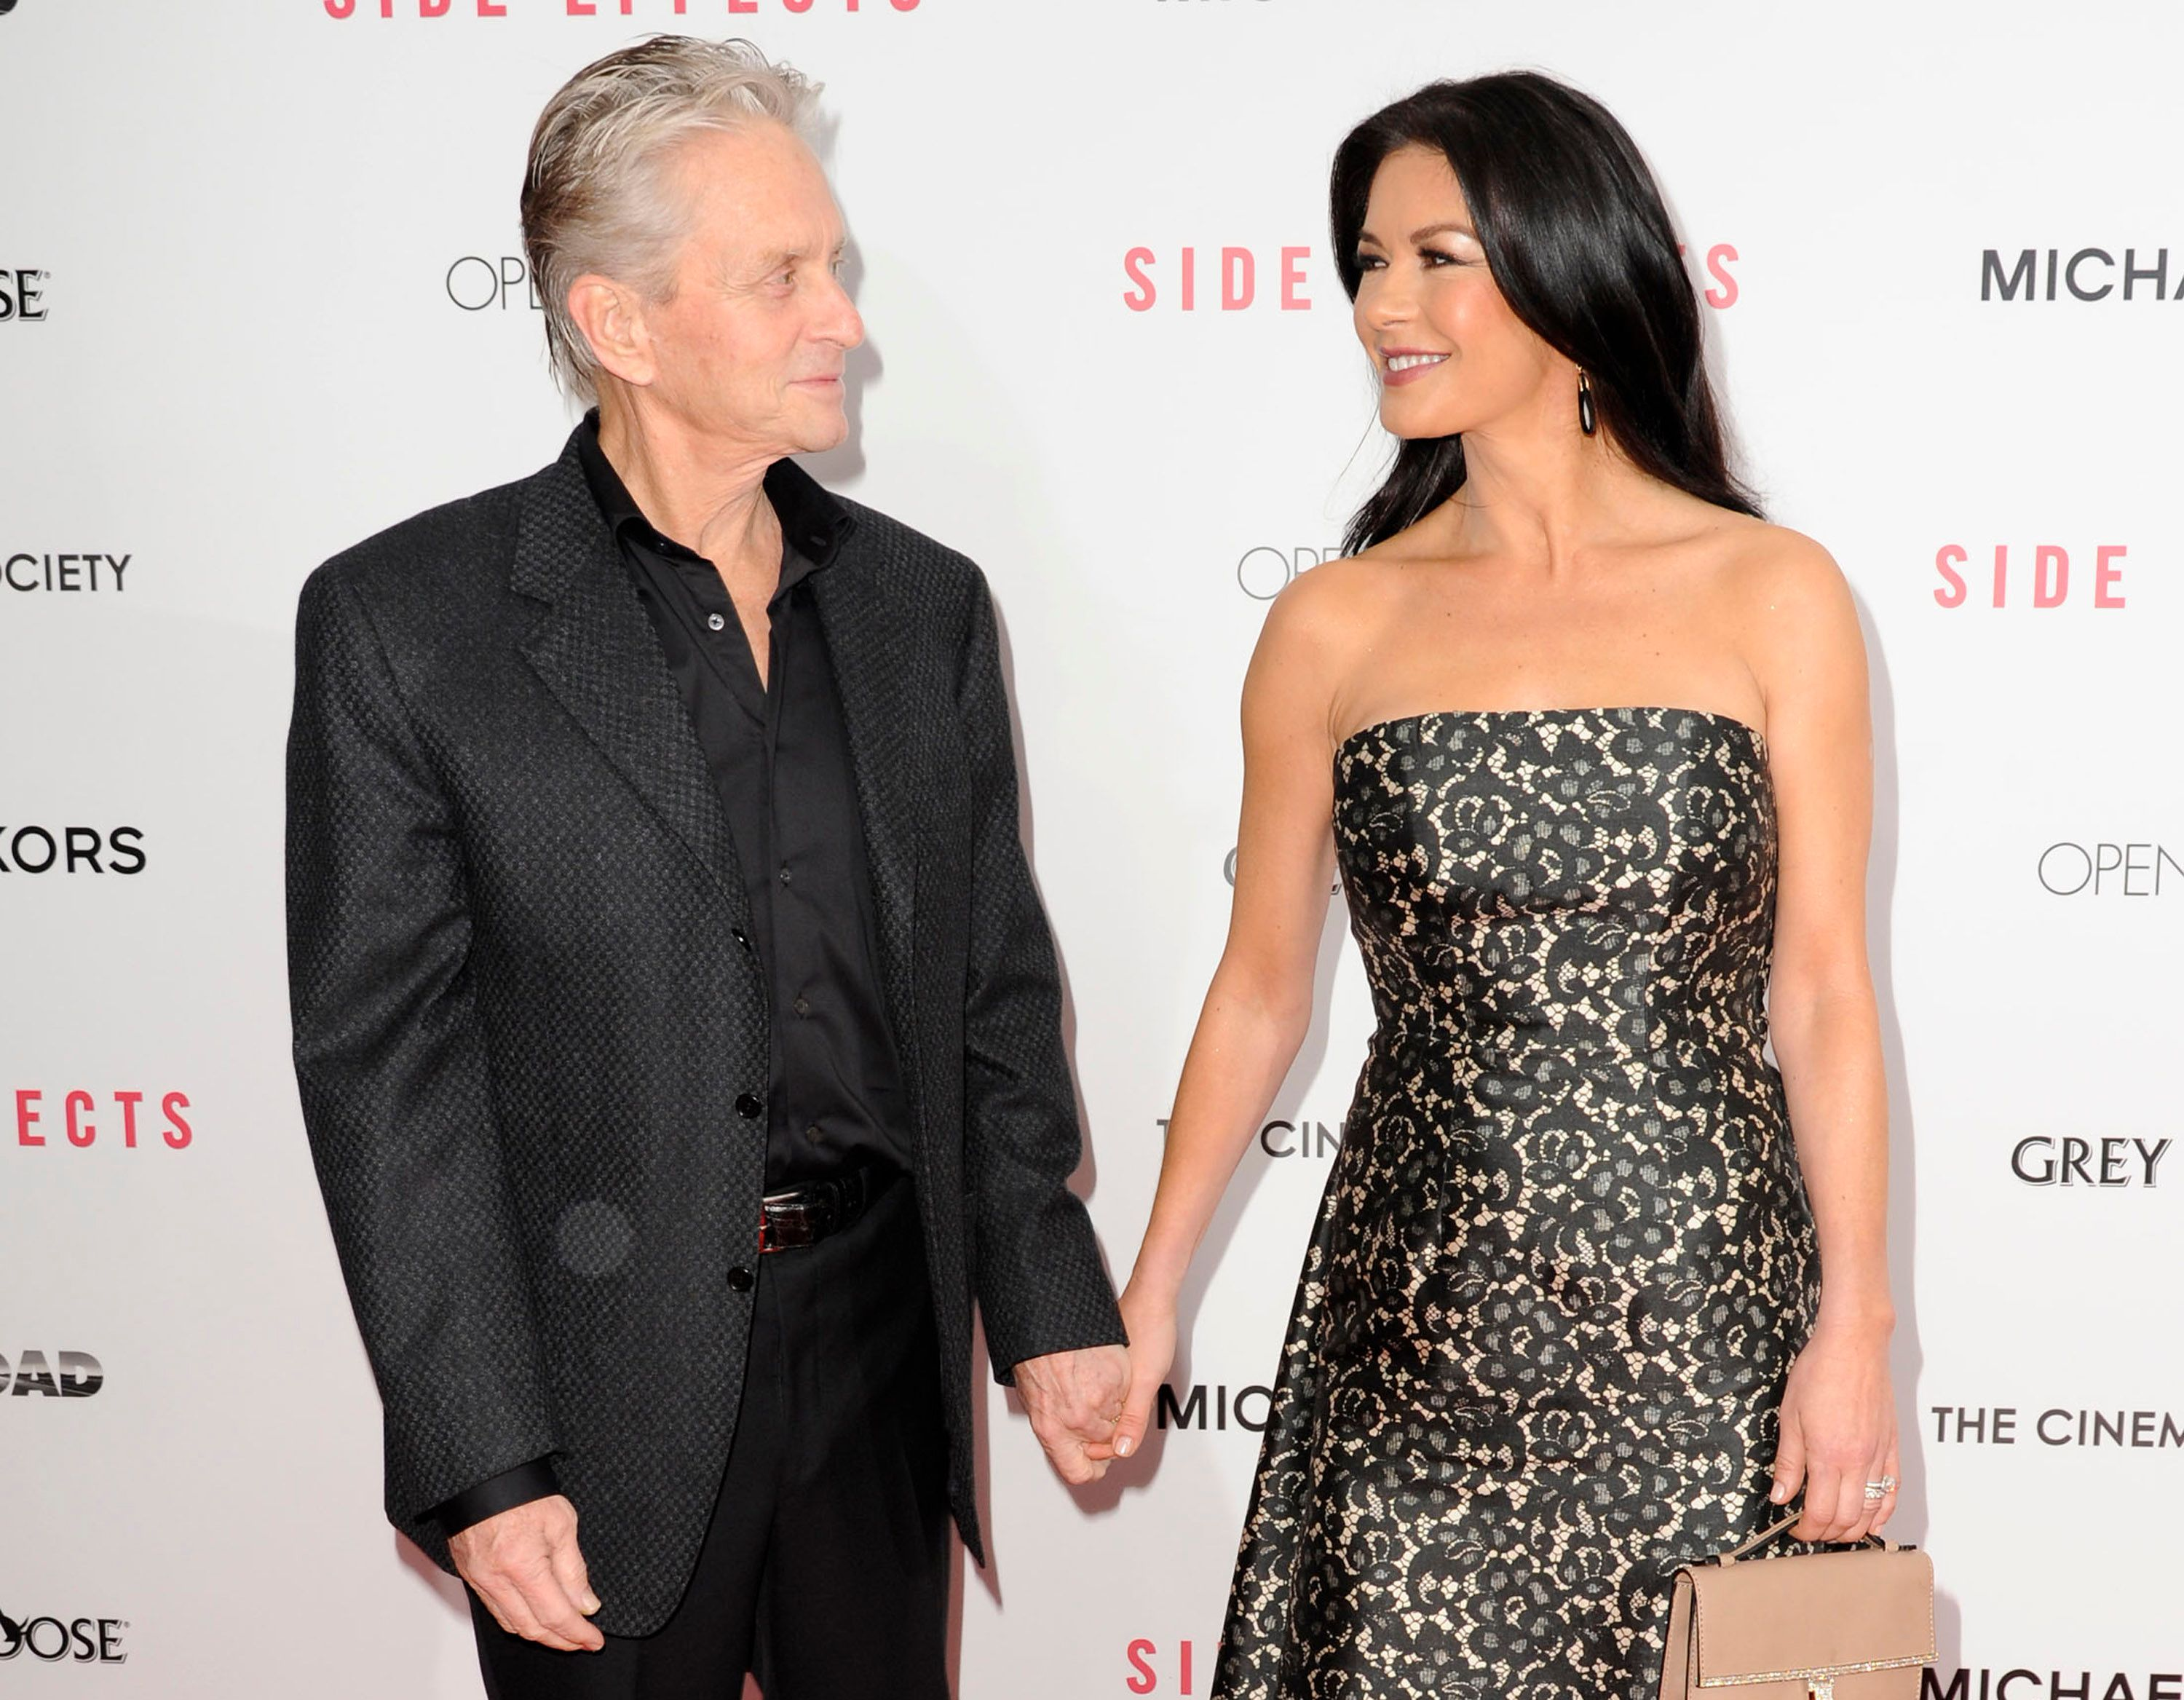 """Michael Douglas and Catherine Zeta-Jones during the premiere of """"Side Effects"""" at AMC Lincoln Square Theater on January 31, 2013 